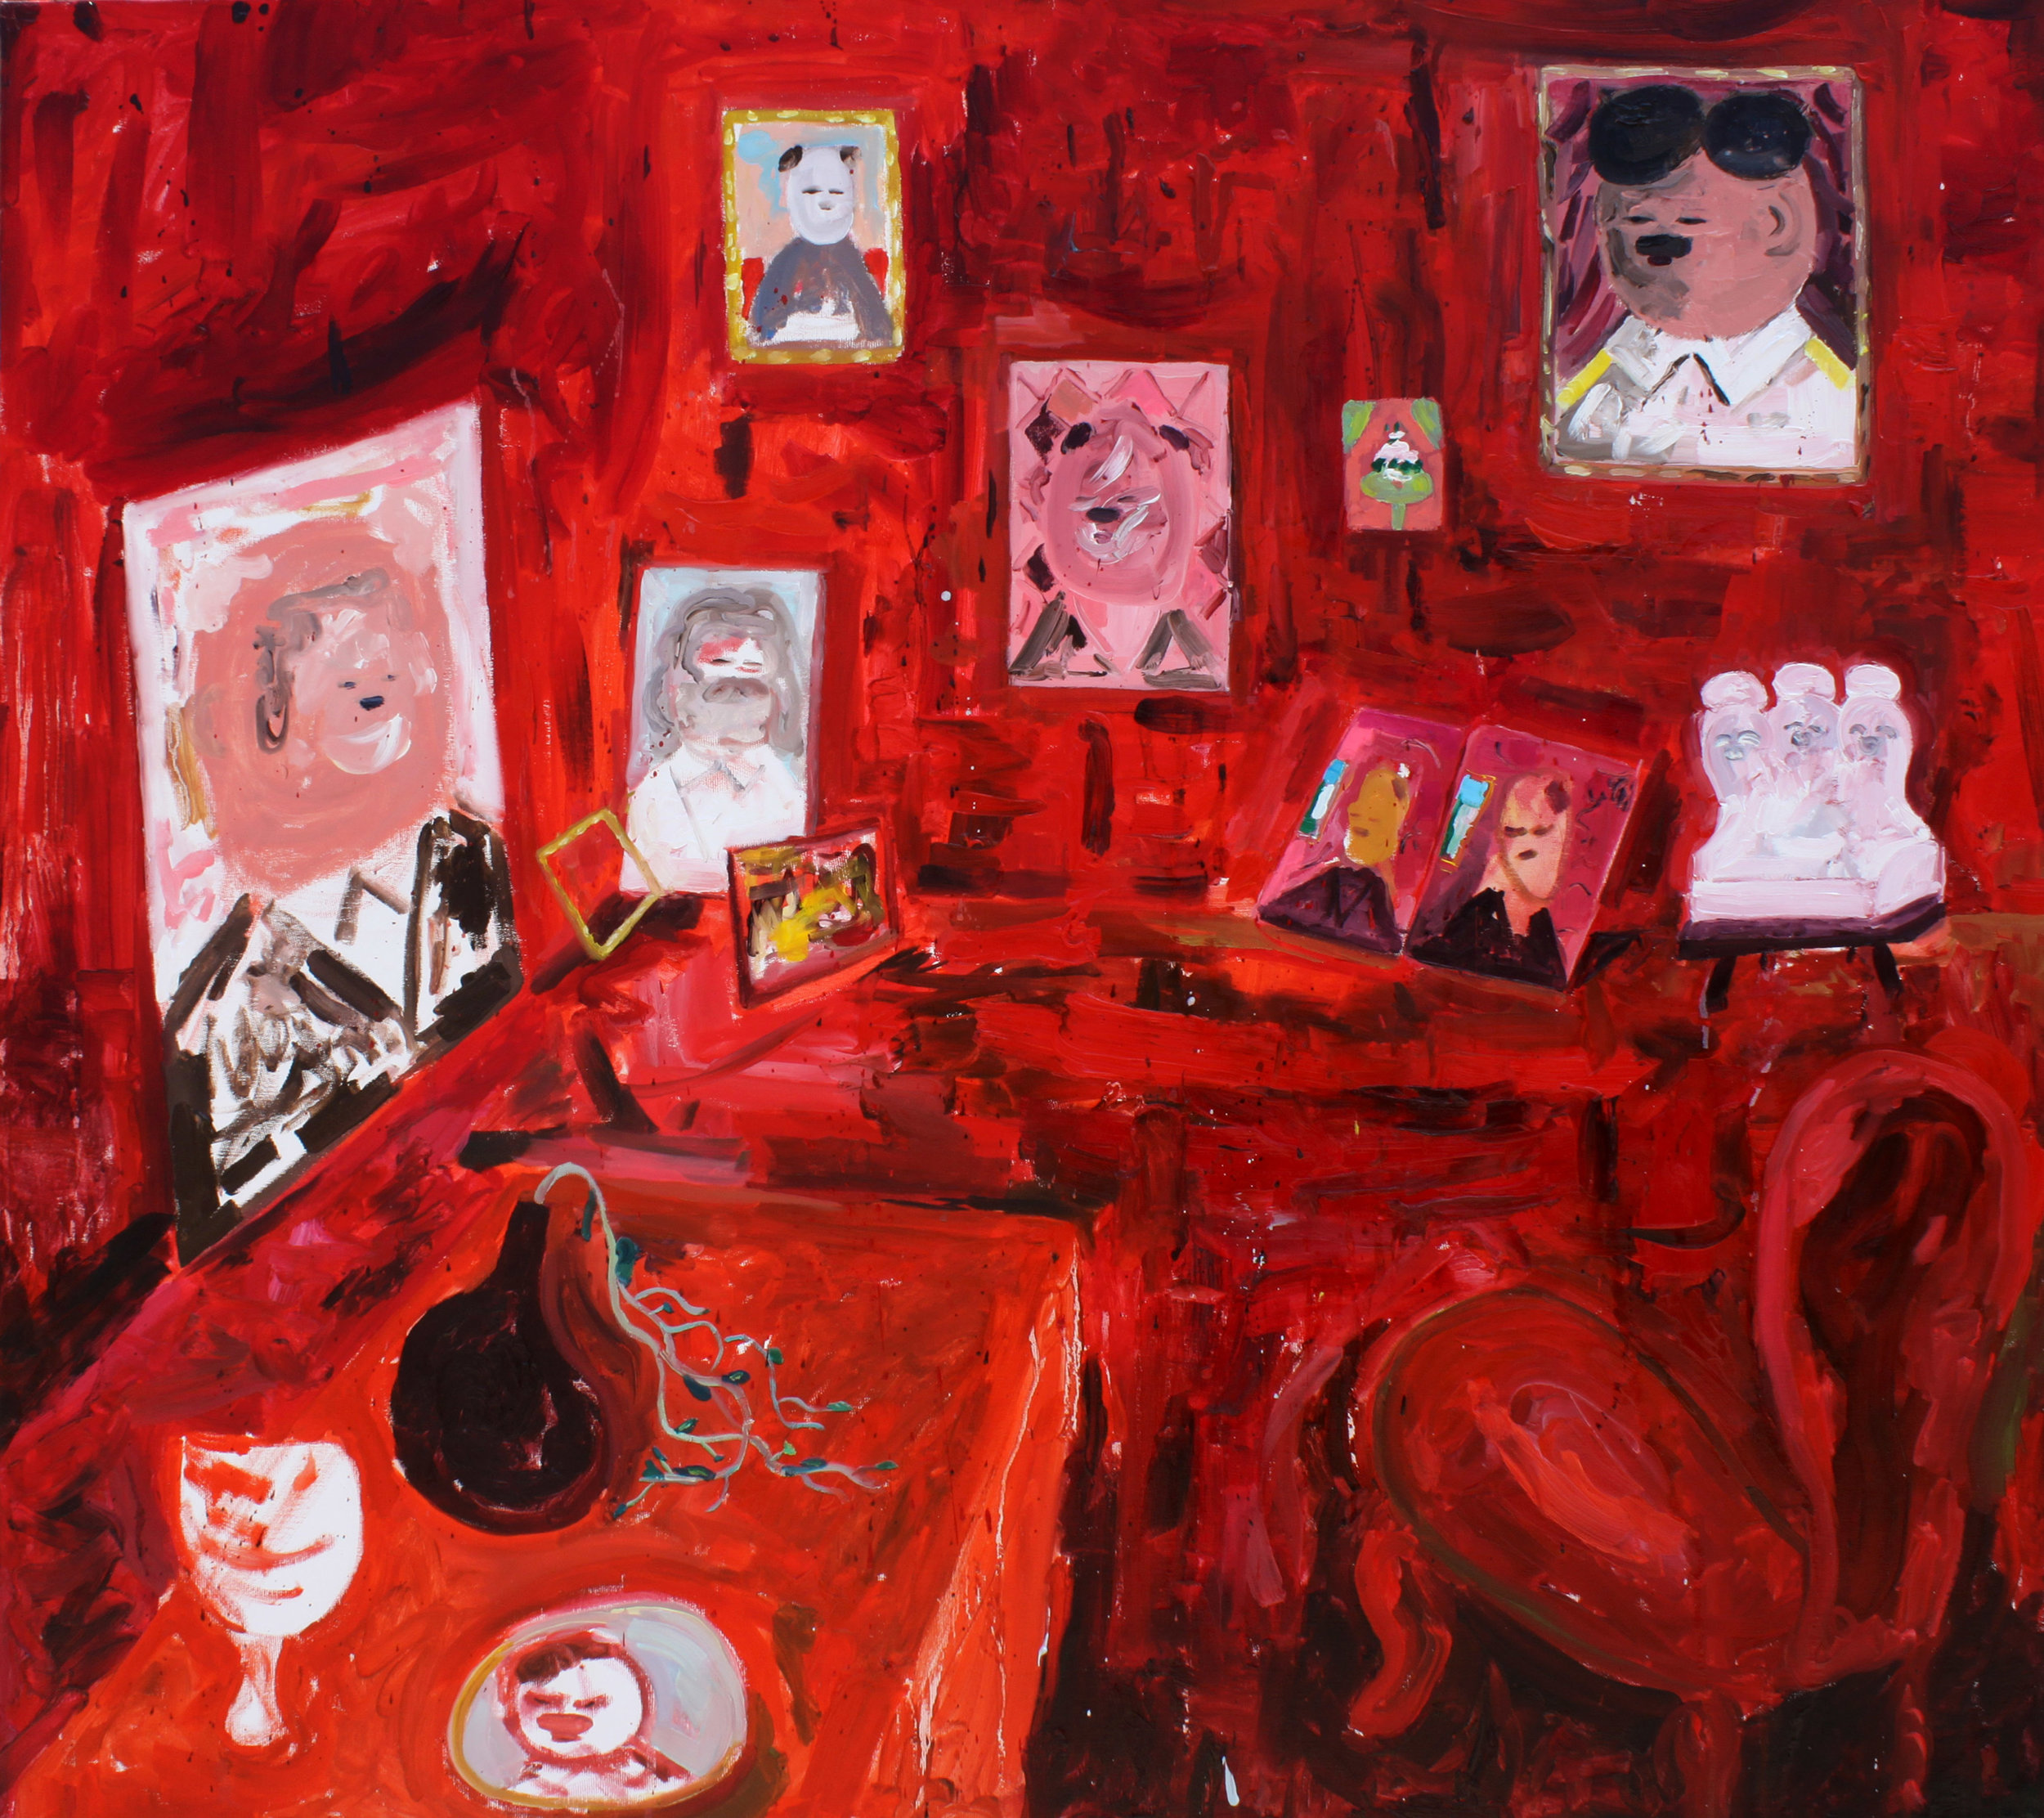 Amir Khojasteh Red Room, 2018 Oil on canvas 90 x 80 cm. Courtesy of the artist and Carbon 12